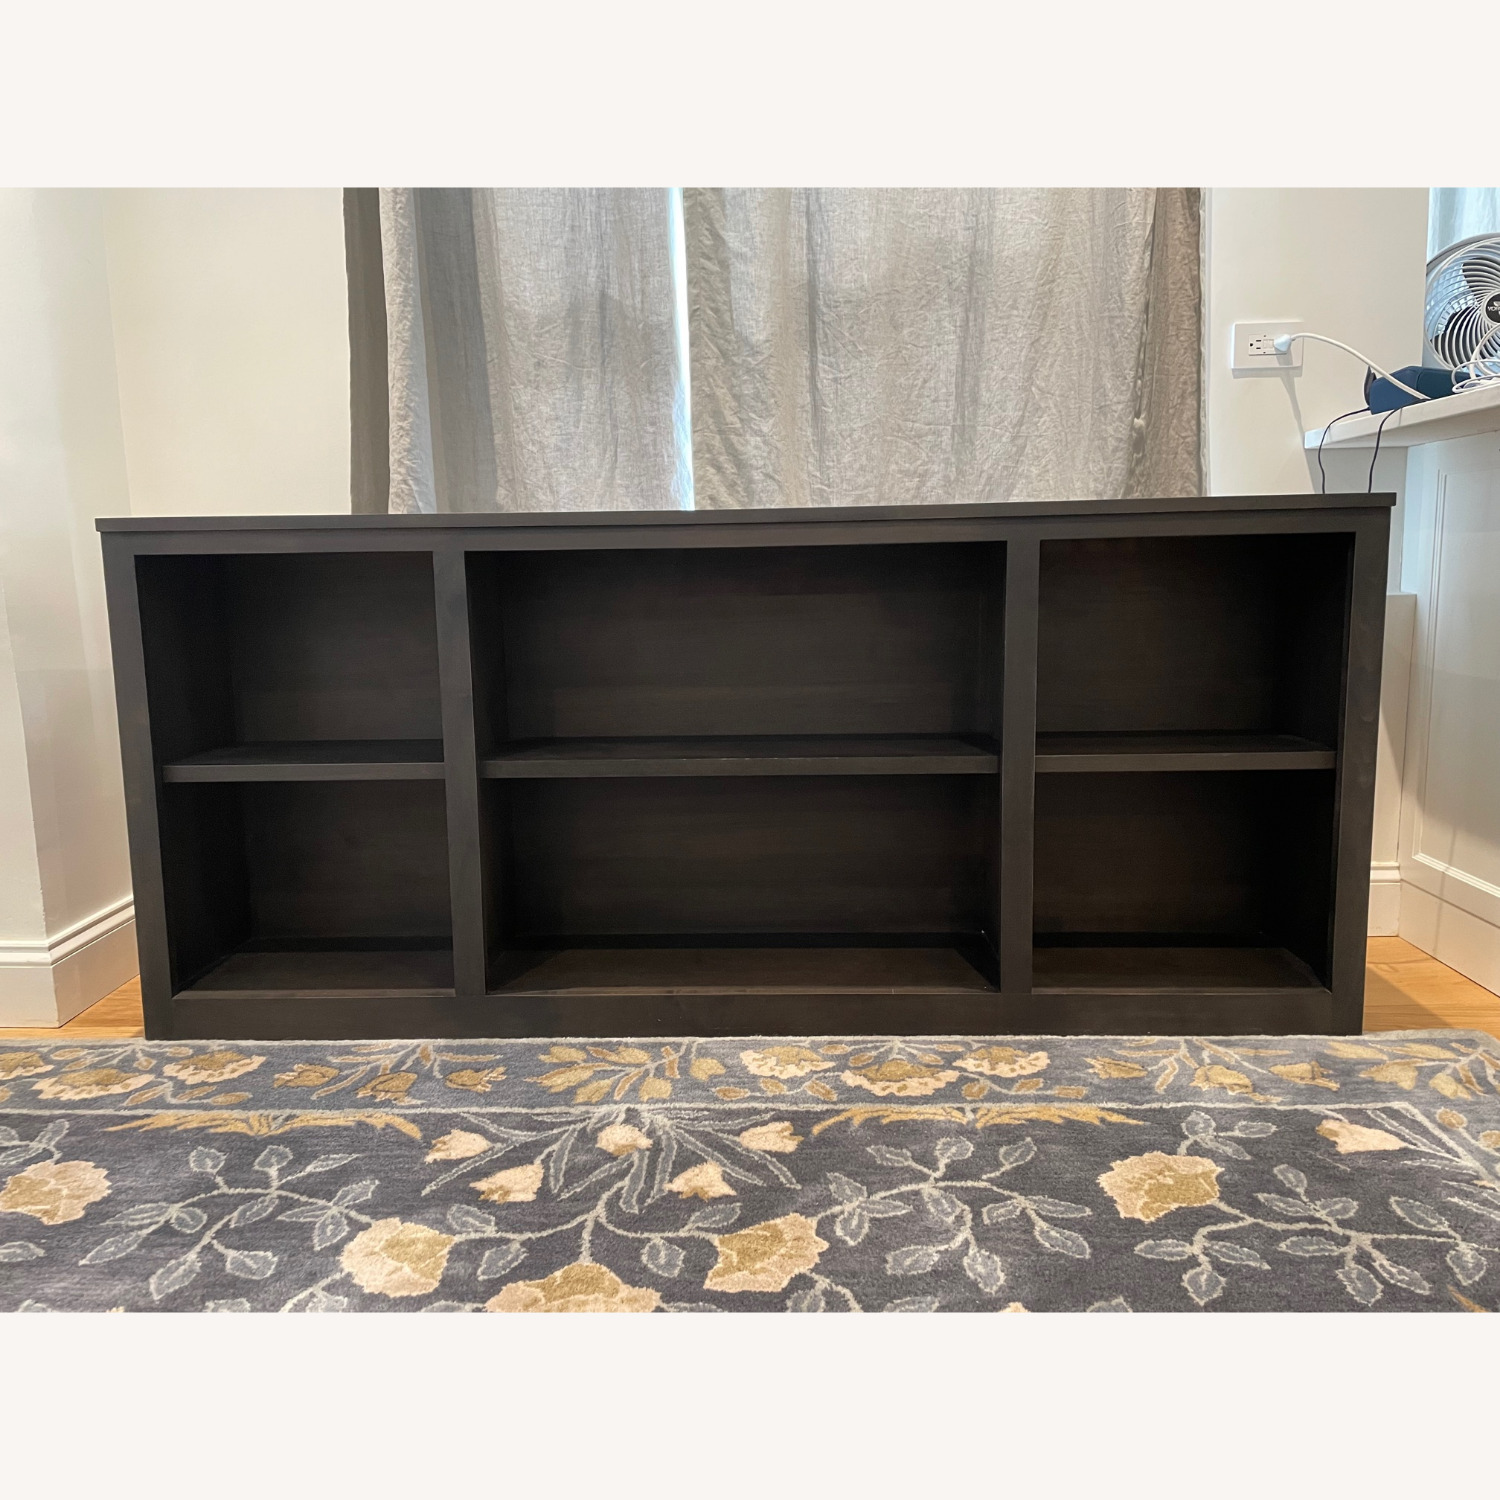 Room & Board Woodwind Console Bookcase in maple - image-1